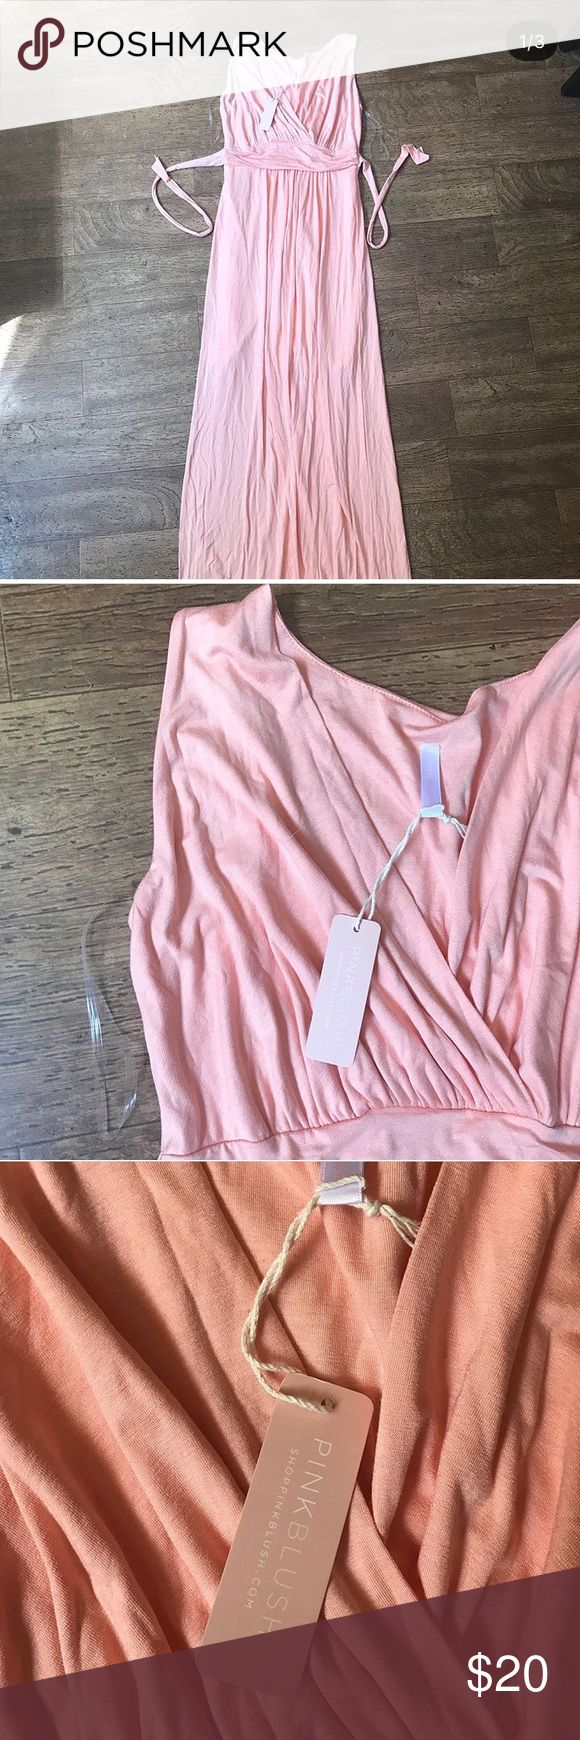 Pink Blush maternity maxi Never worn NWT. Beautiful color! Size small, would fit approx 4-6. Light pink/coral color. Pink Blush Maternity Dresses Maxi